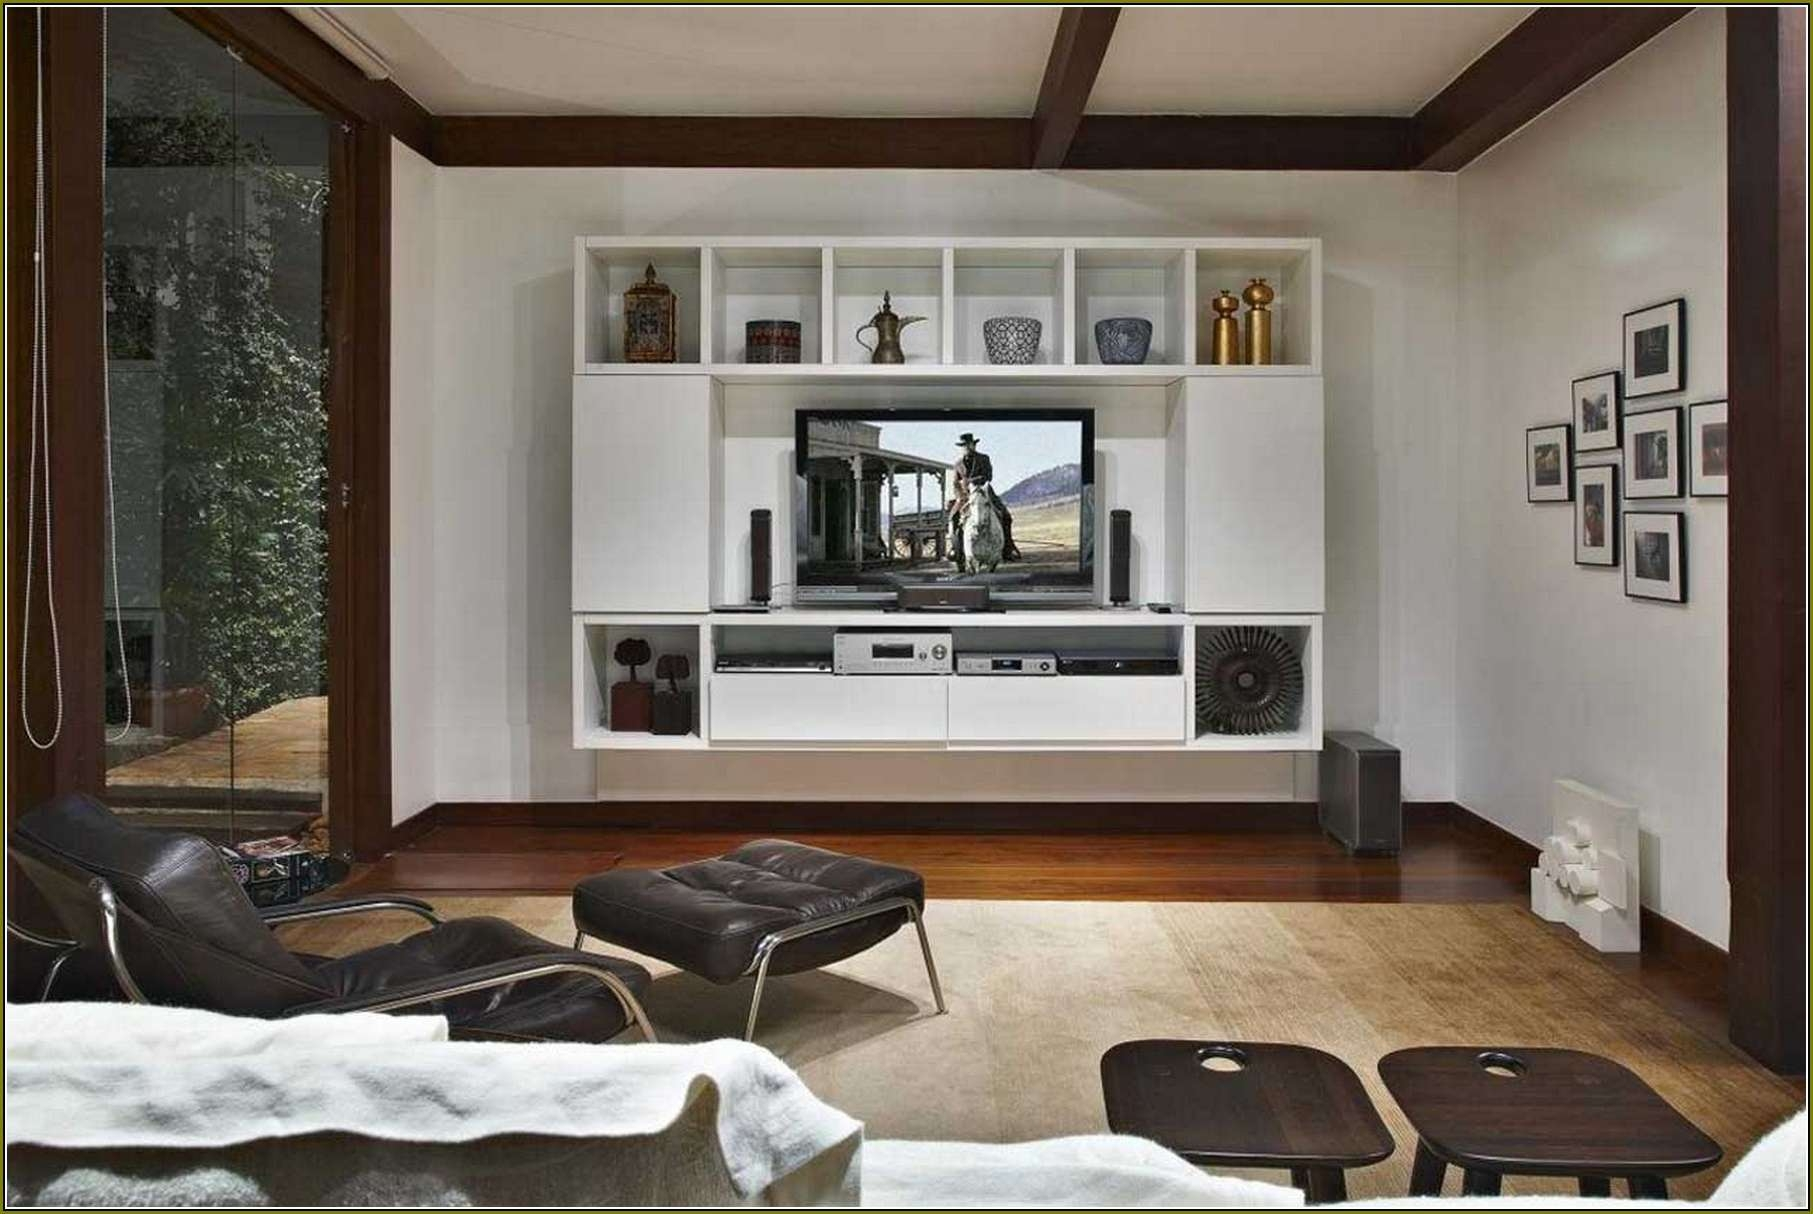 Flat Screen Tv Cabinet Ideas | Home Design Ideas Within Wall Mounted Tv Cabinets For Flat Screens With Doors (View 5 of 20)